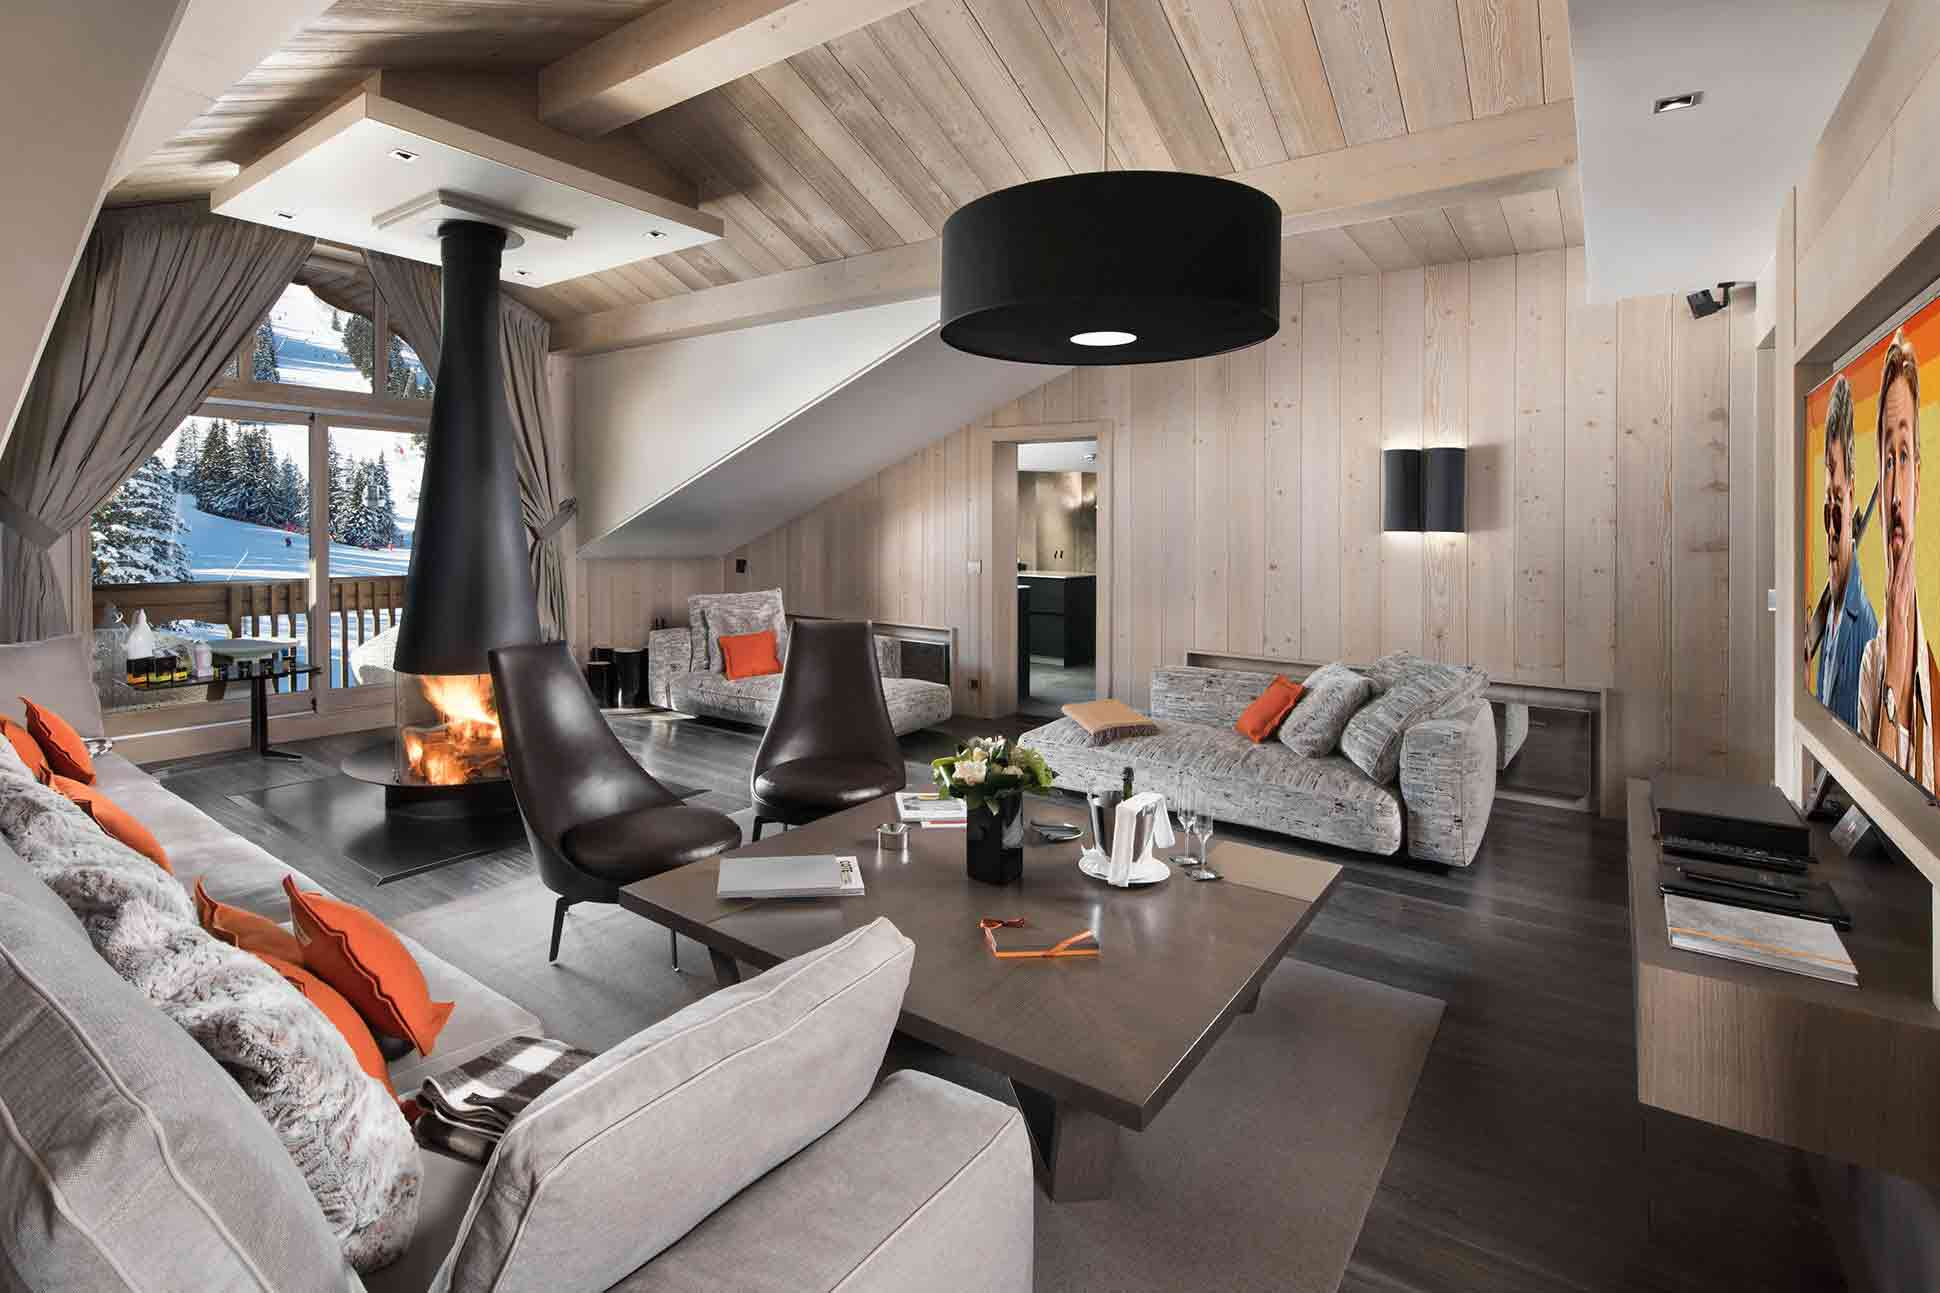 Grandes Alpes Hotel, Courchevel, France